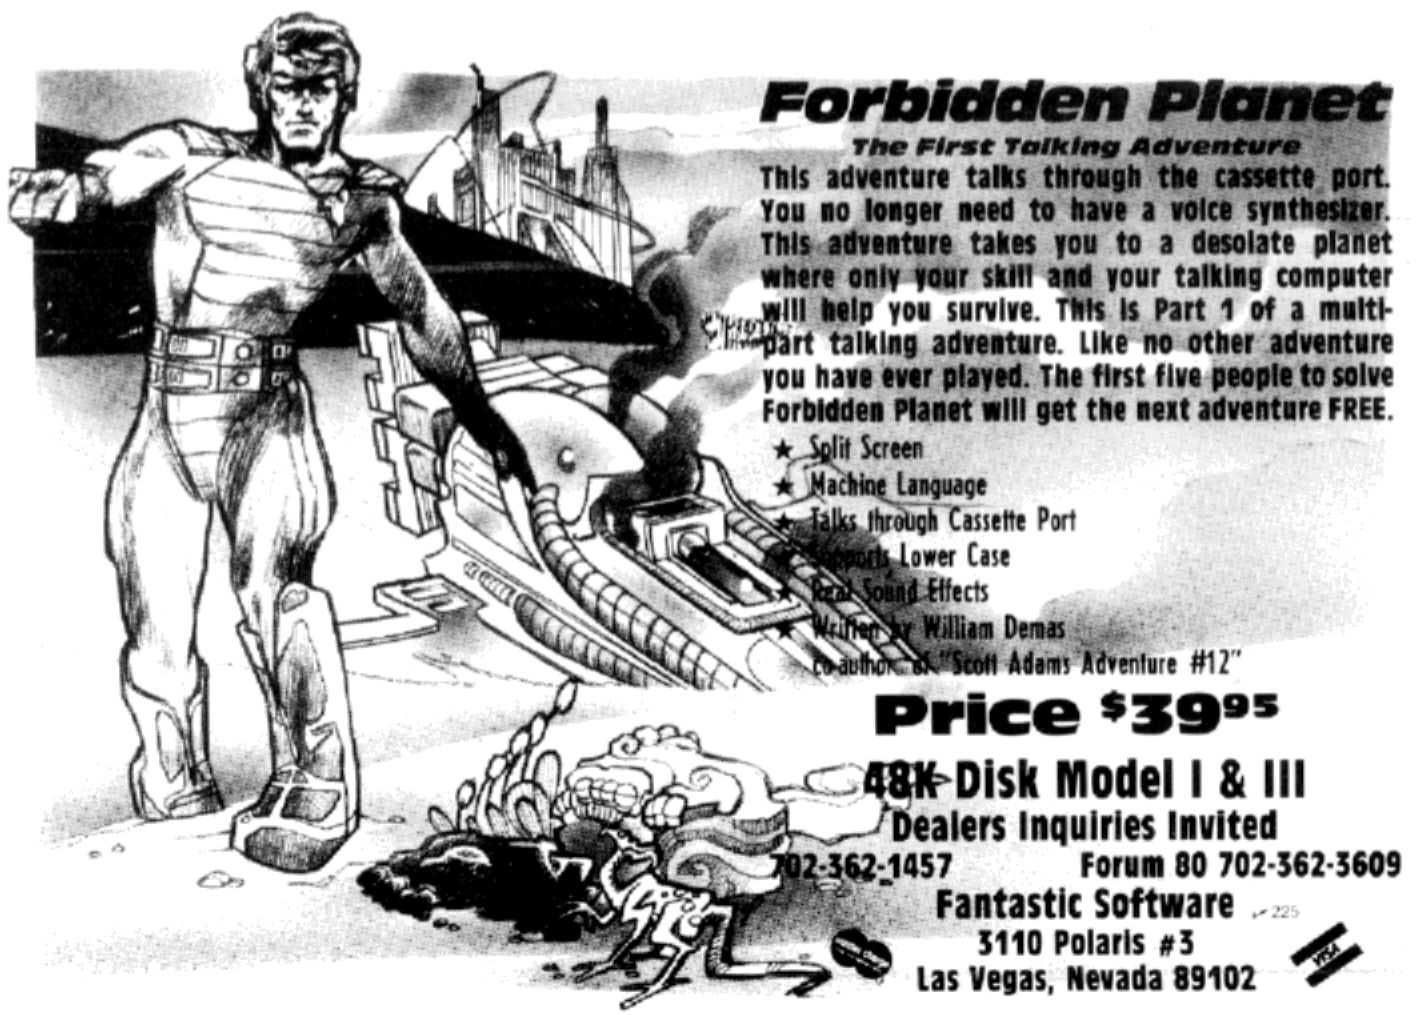 forbidden planet ad Here's a vintage ad, from the December 1981 issue of 80 Micro magazine, ...